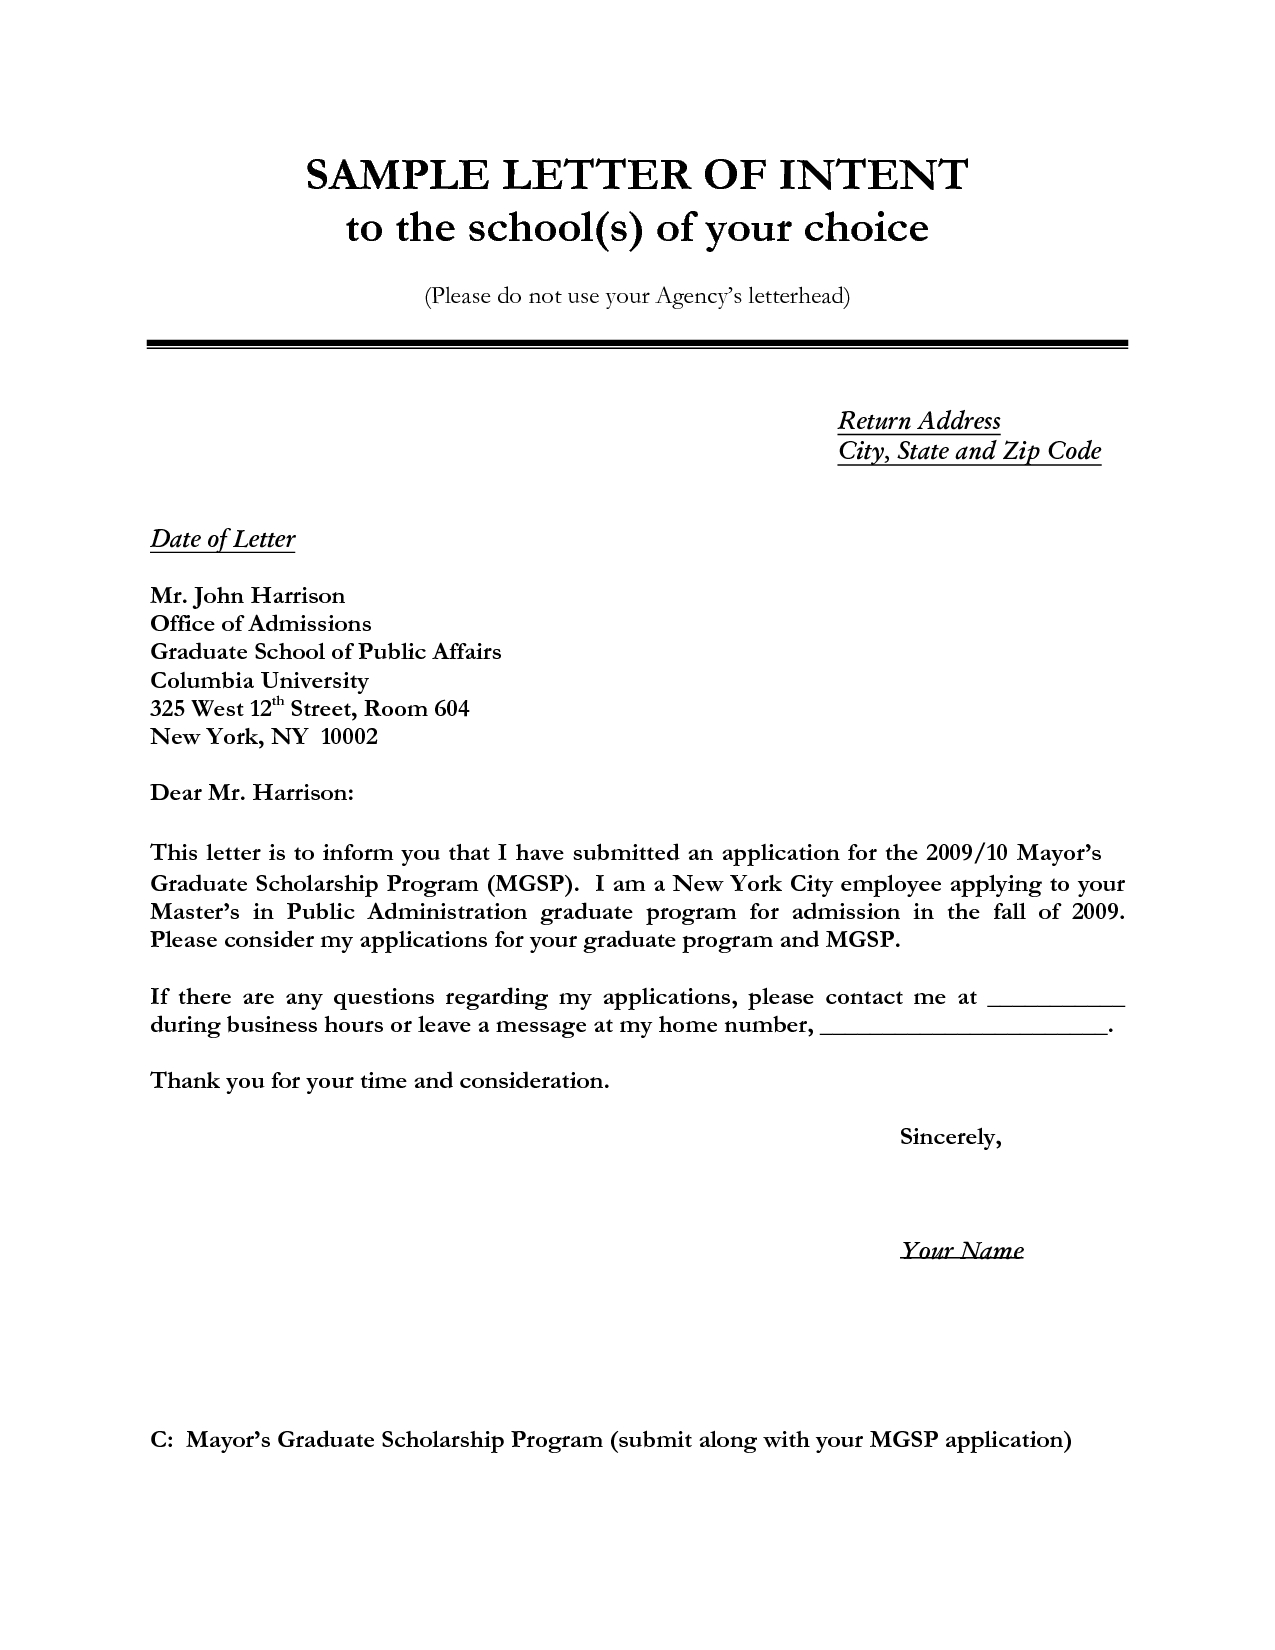 Letter Of Intent Template Word - Letter Of Intent Sample